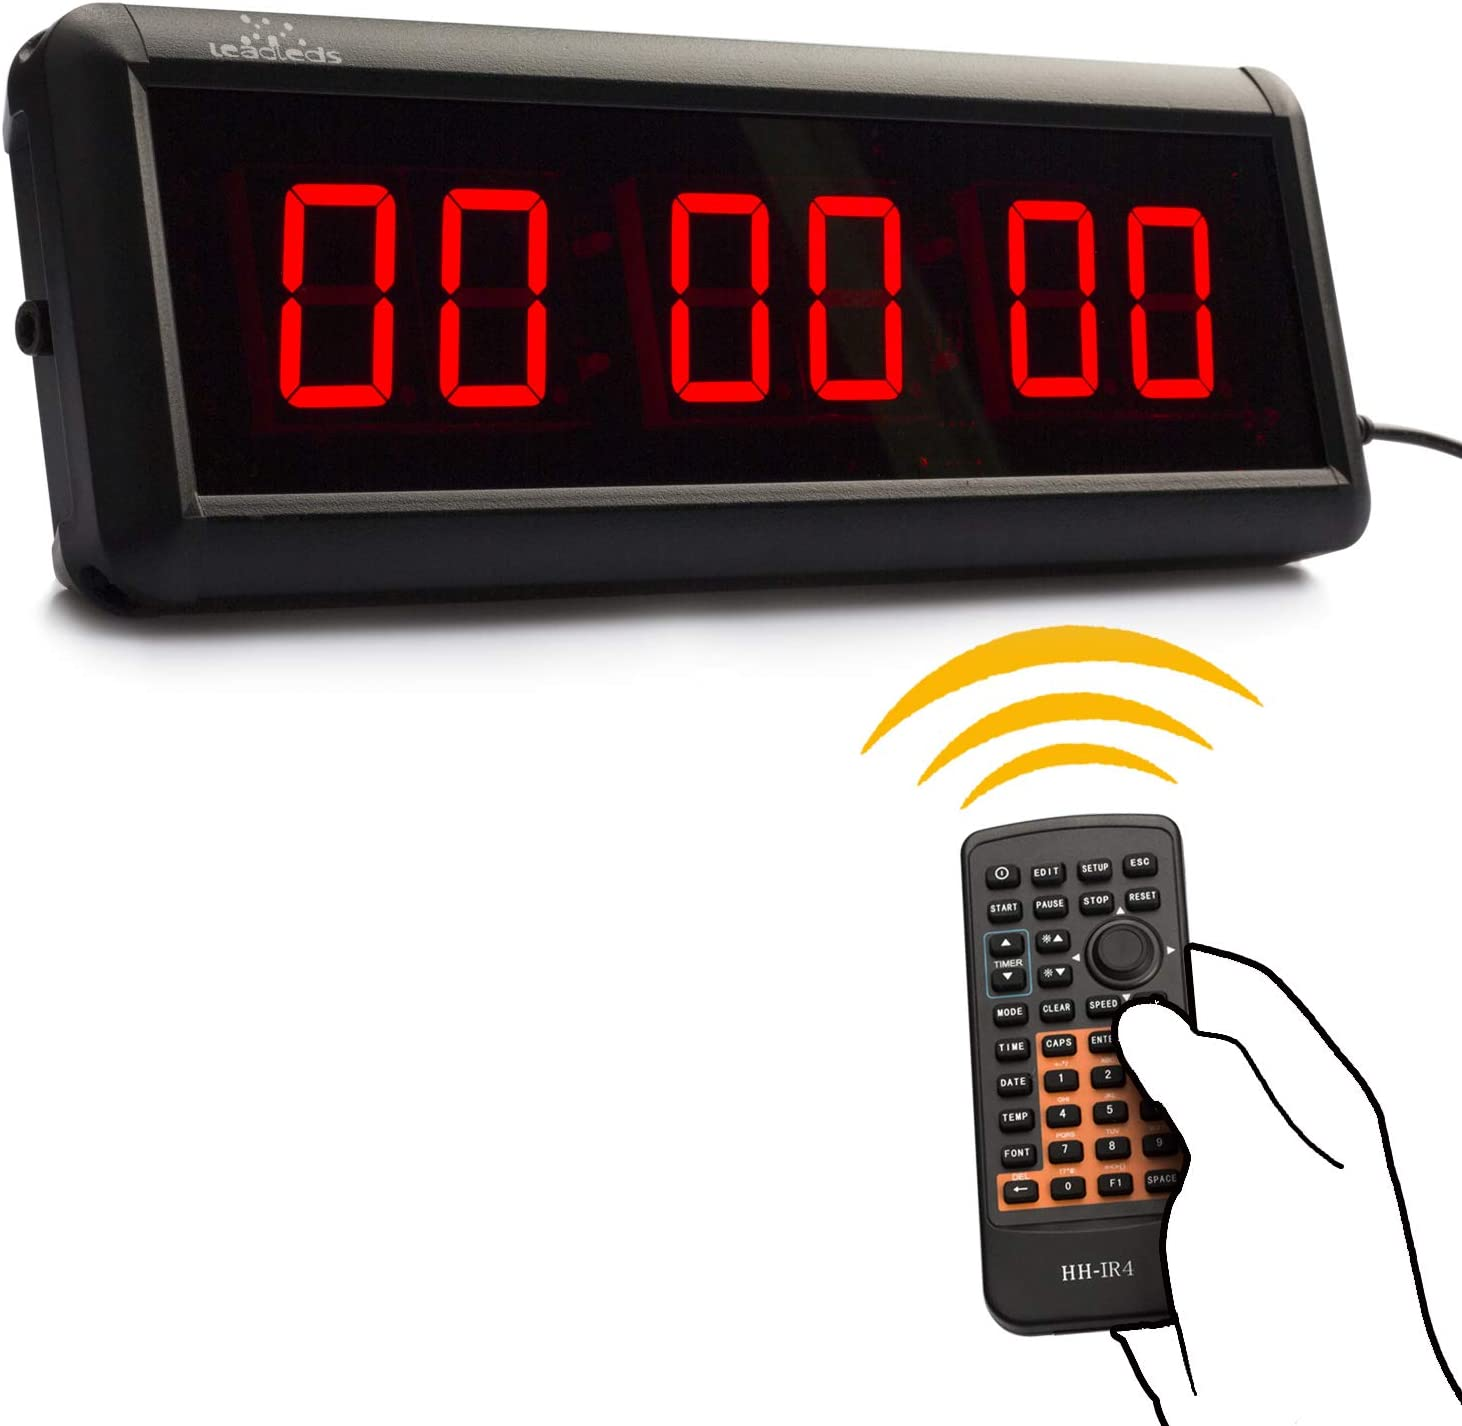 Leadleds 1.5 inch Digital Clock Display Countdown Count up LED Timer for Home Office Gym Use Stopwatch with Remote